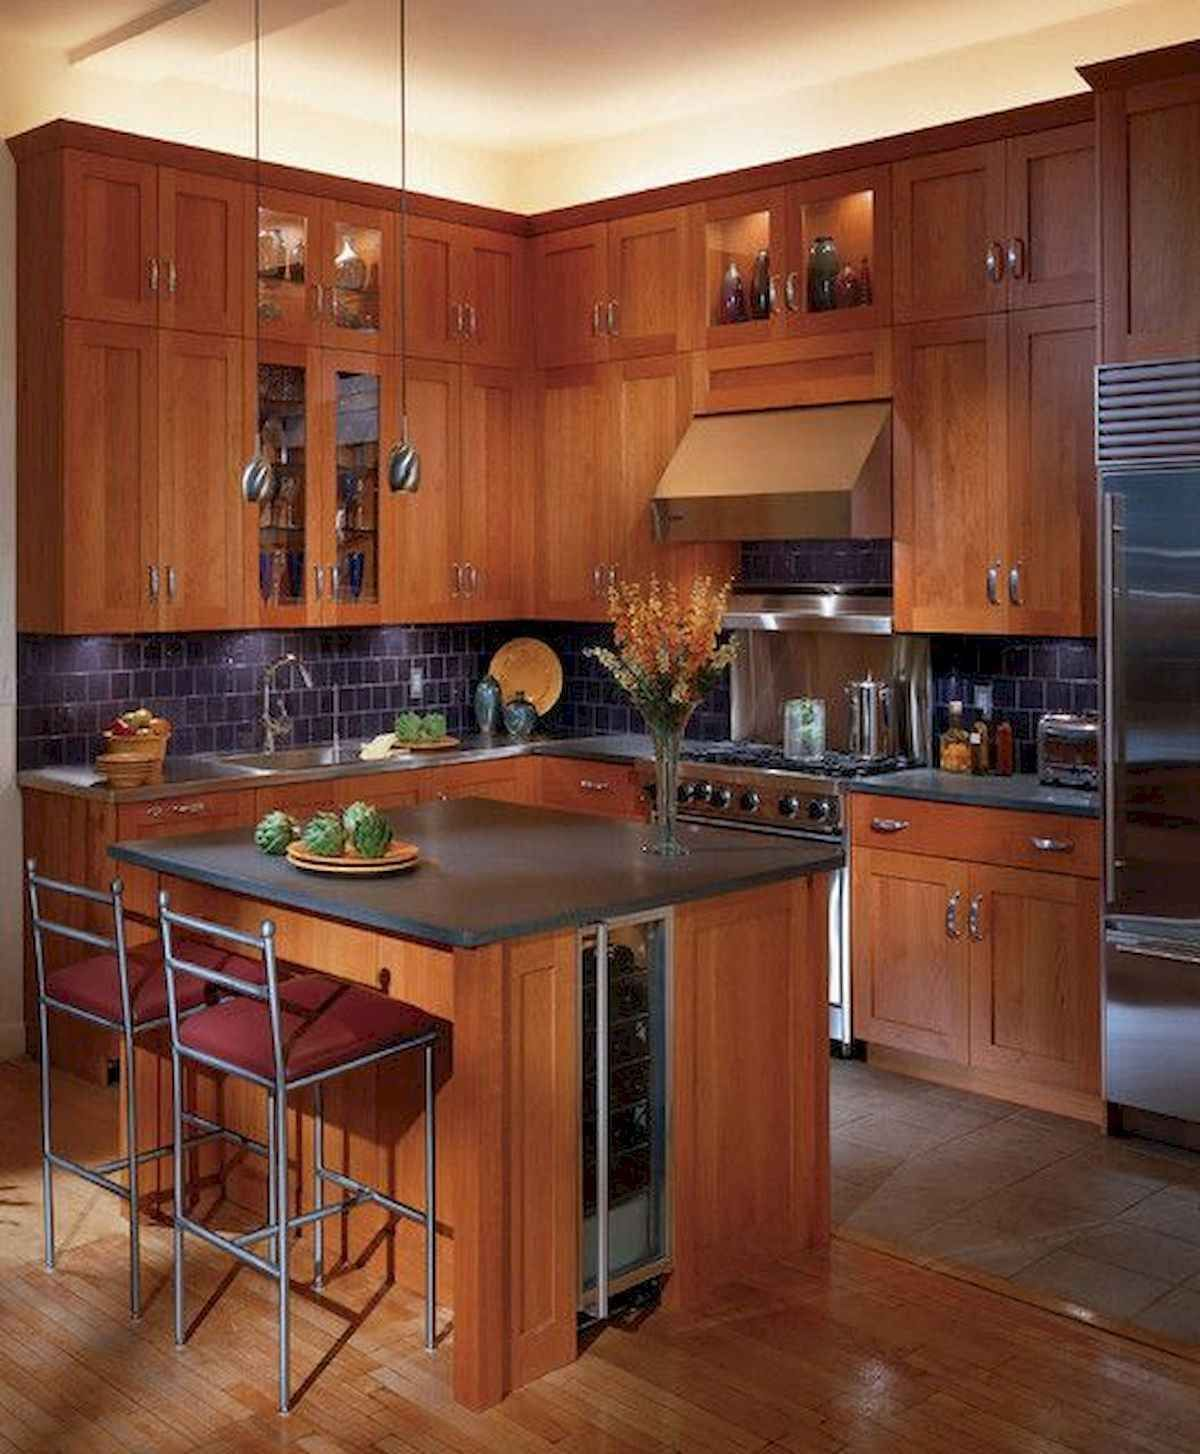 Classy Kitchen Kitchen Cabinet Styles Solid Wood Kitchen Cabinets Kitchen Design In 2020 Classy Kitchen Solid Wood Kitchen Cabinets Kitchen Cabinet Styles